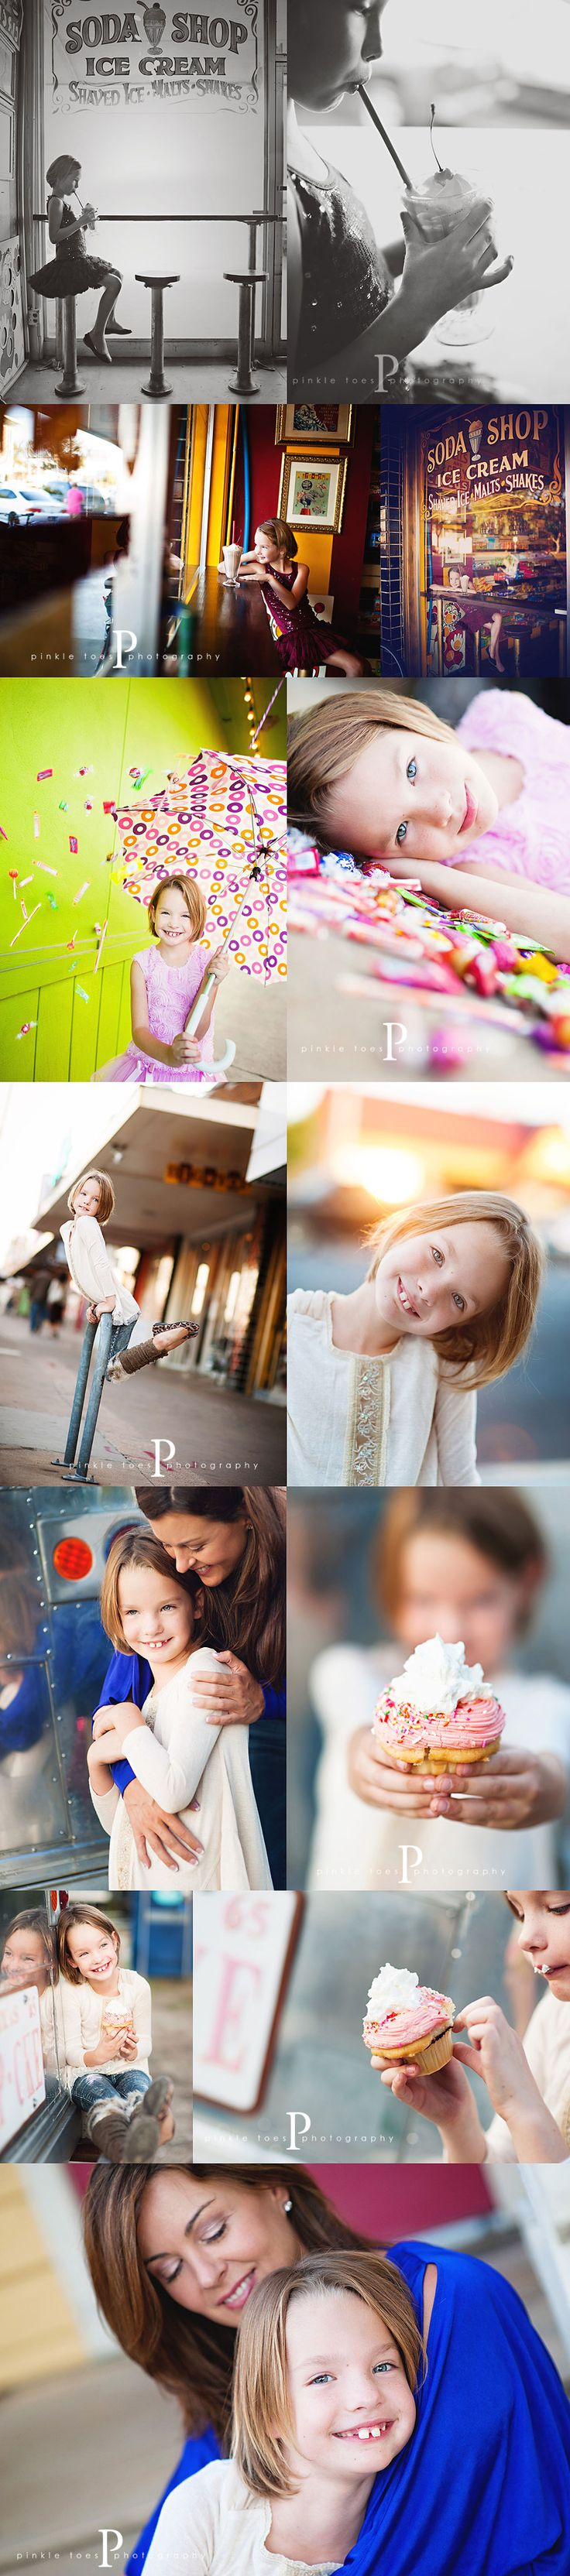 Michele of Pinkletoes Photography continues to inspire me. I love this girlie session with candy at an ice cream parlor (with cupcakes, too!) and want to do one with Emma someday. Ultimately, remember how NOT cookie-cutter these sessions are ... this is what I want for AKP. Unique, lively, beautiful, themed...